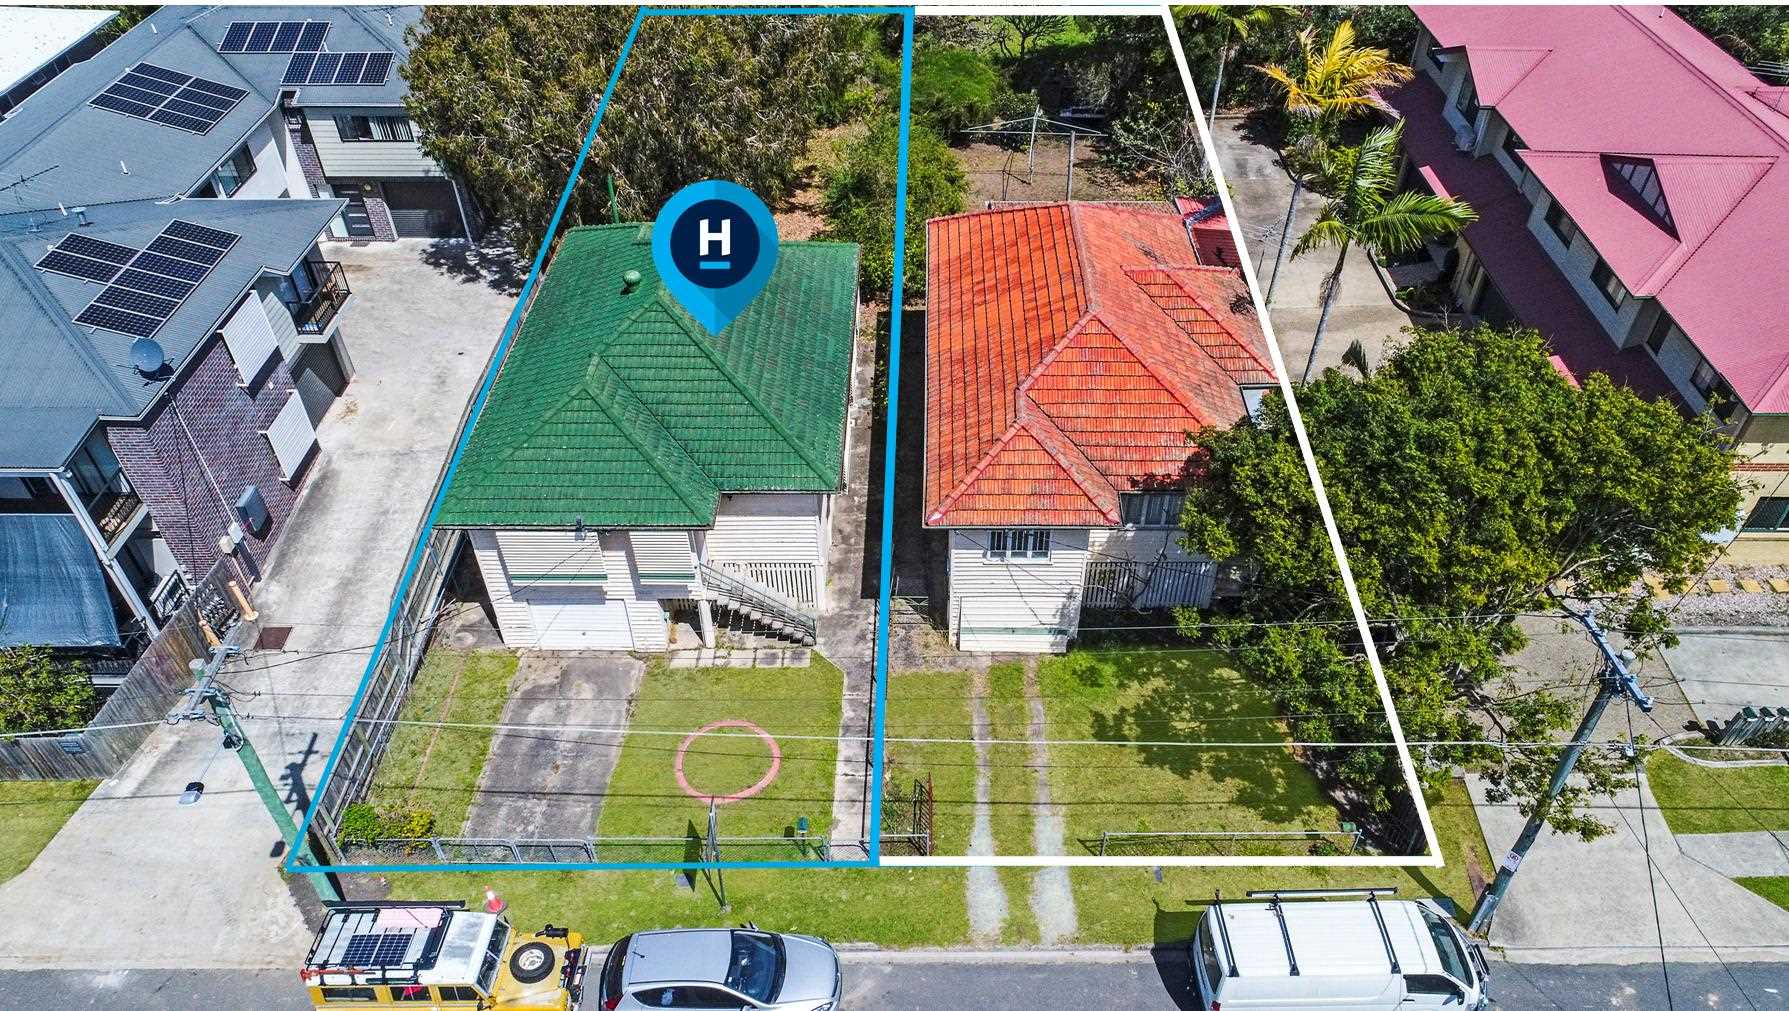 28 Latham Street - Green Roof